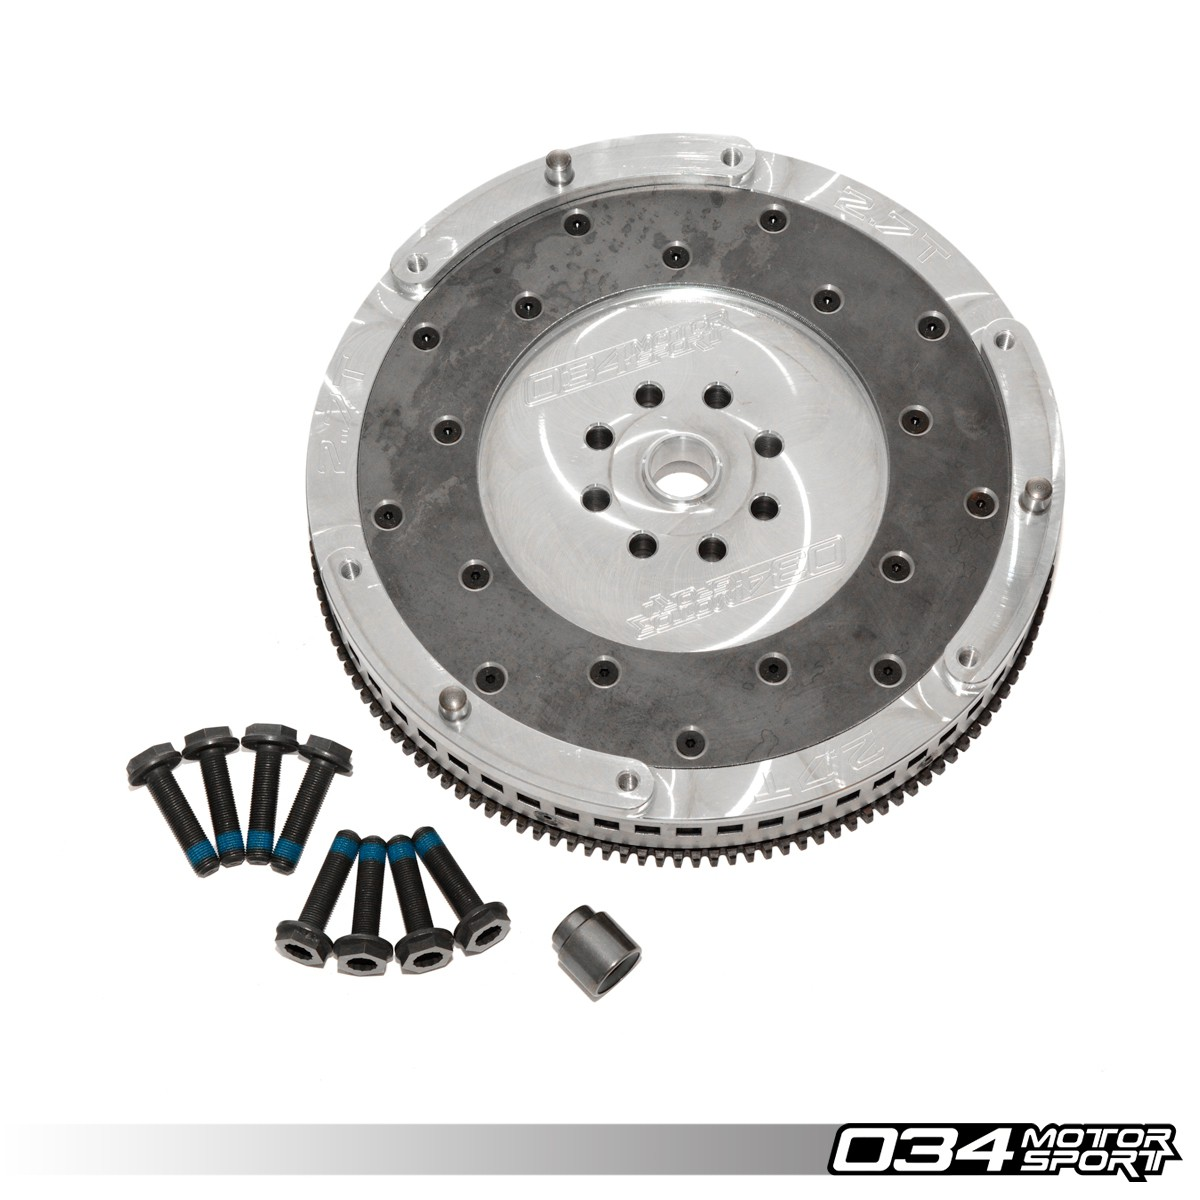 Lightweight Single-Mass Aluminum Flywheel Upgrade for B5 Audi S4 & C5 Audi A6/Allroad 2.7T | Replaces 078105266N | 034-503-1013